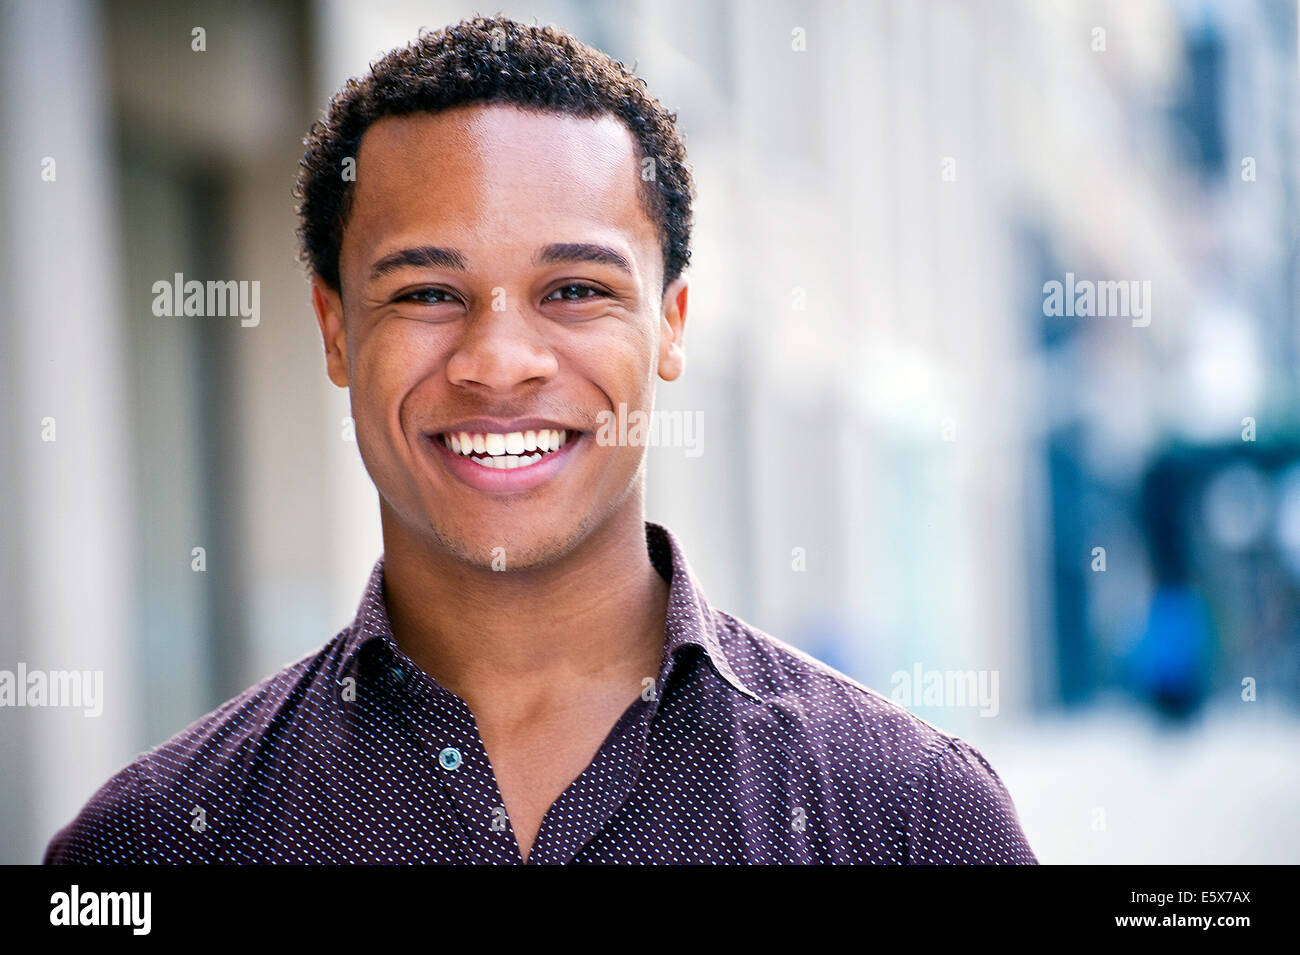 Portrait of young man chatting on city street - Stock Image